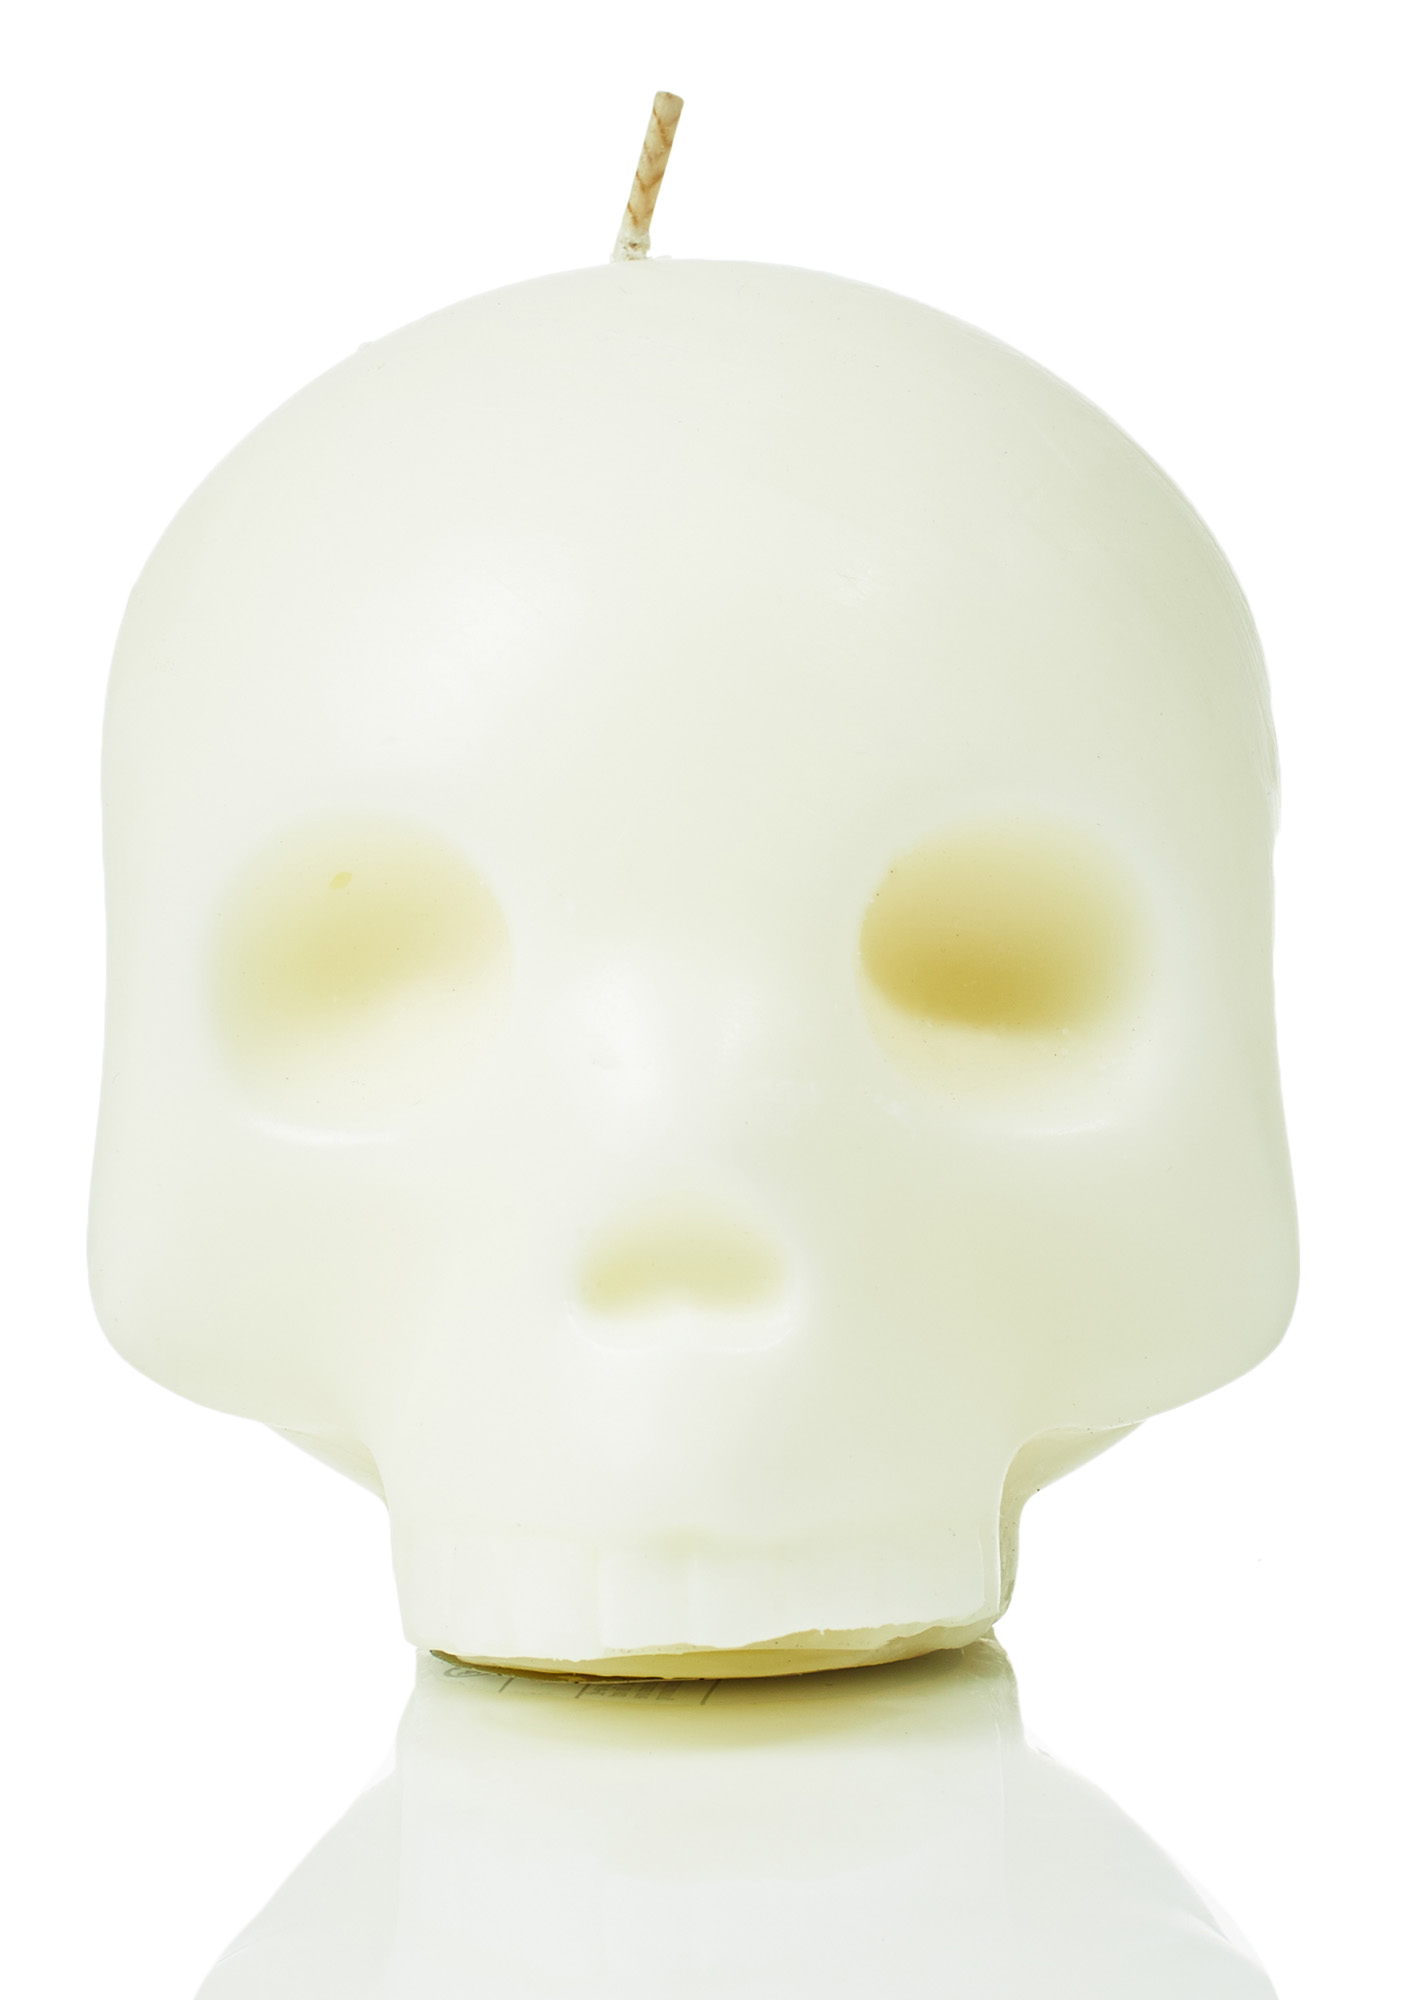 So Dead Emoji Face Candle